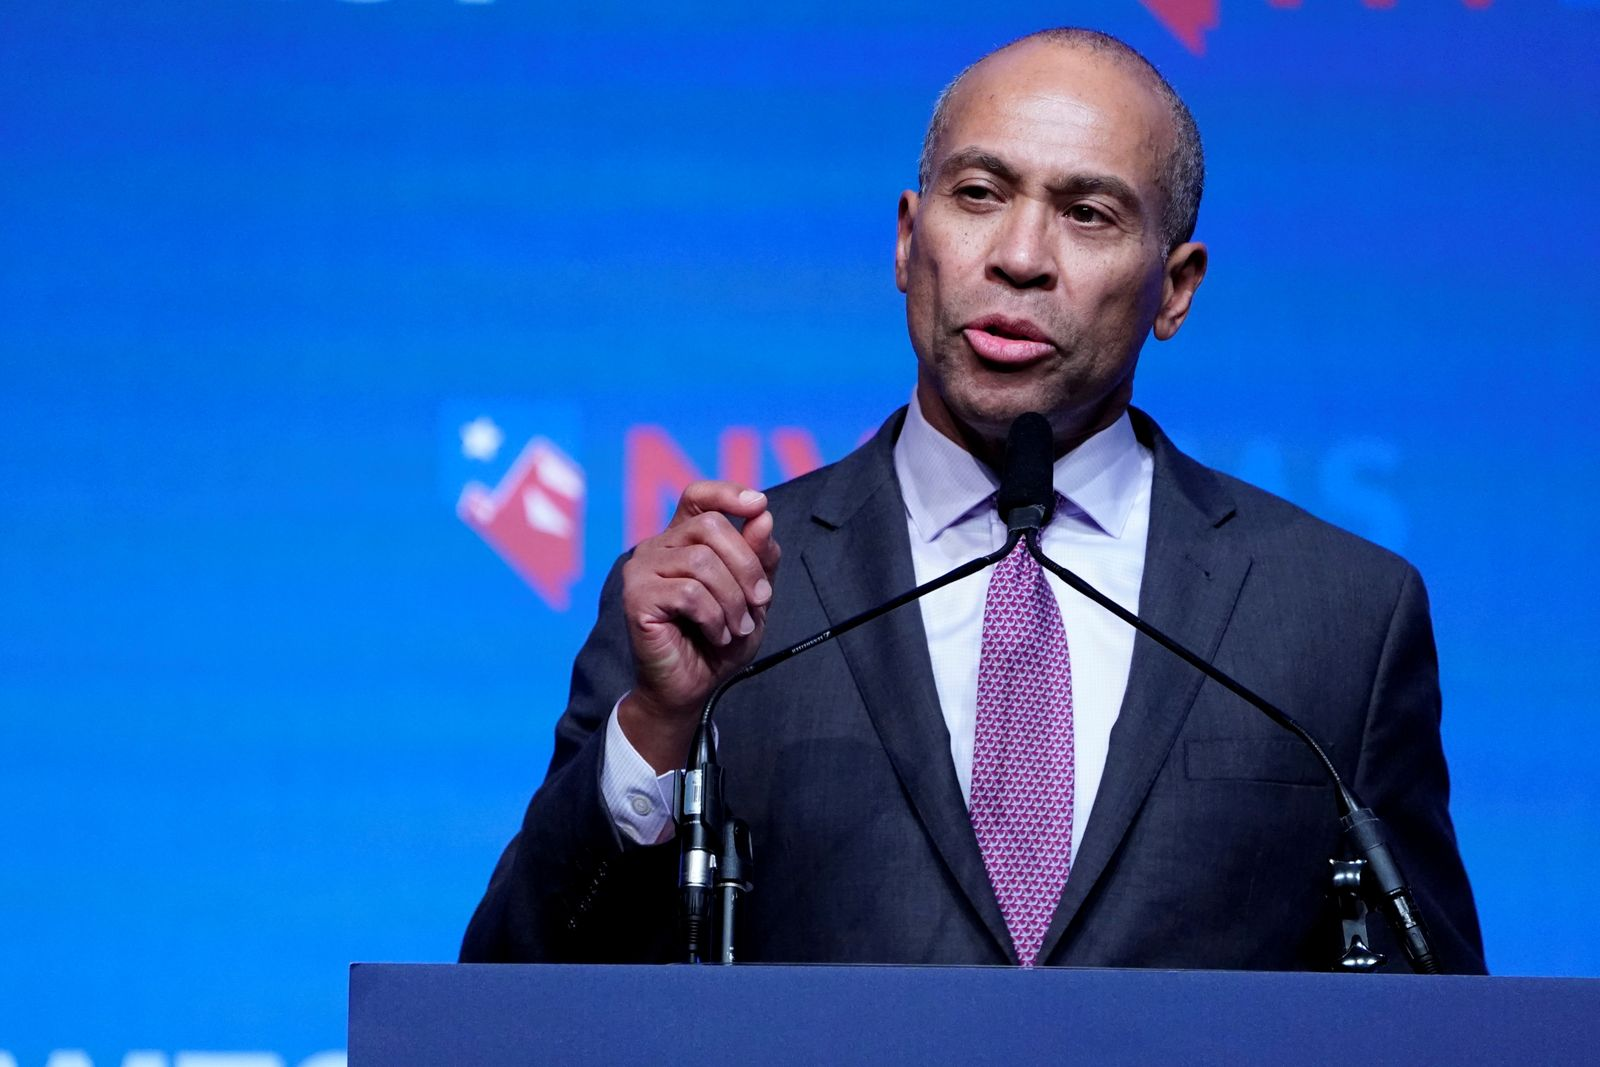 FILE PHOTO: Deval Patrick appears on stage at a First in the West Event at the Bellagio Hotel in Las Vegas, Nevada